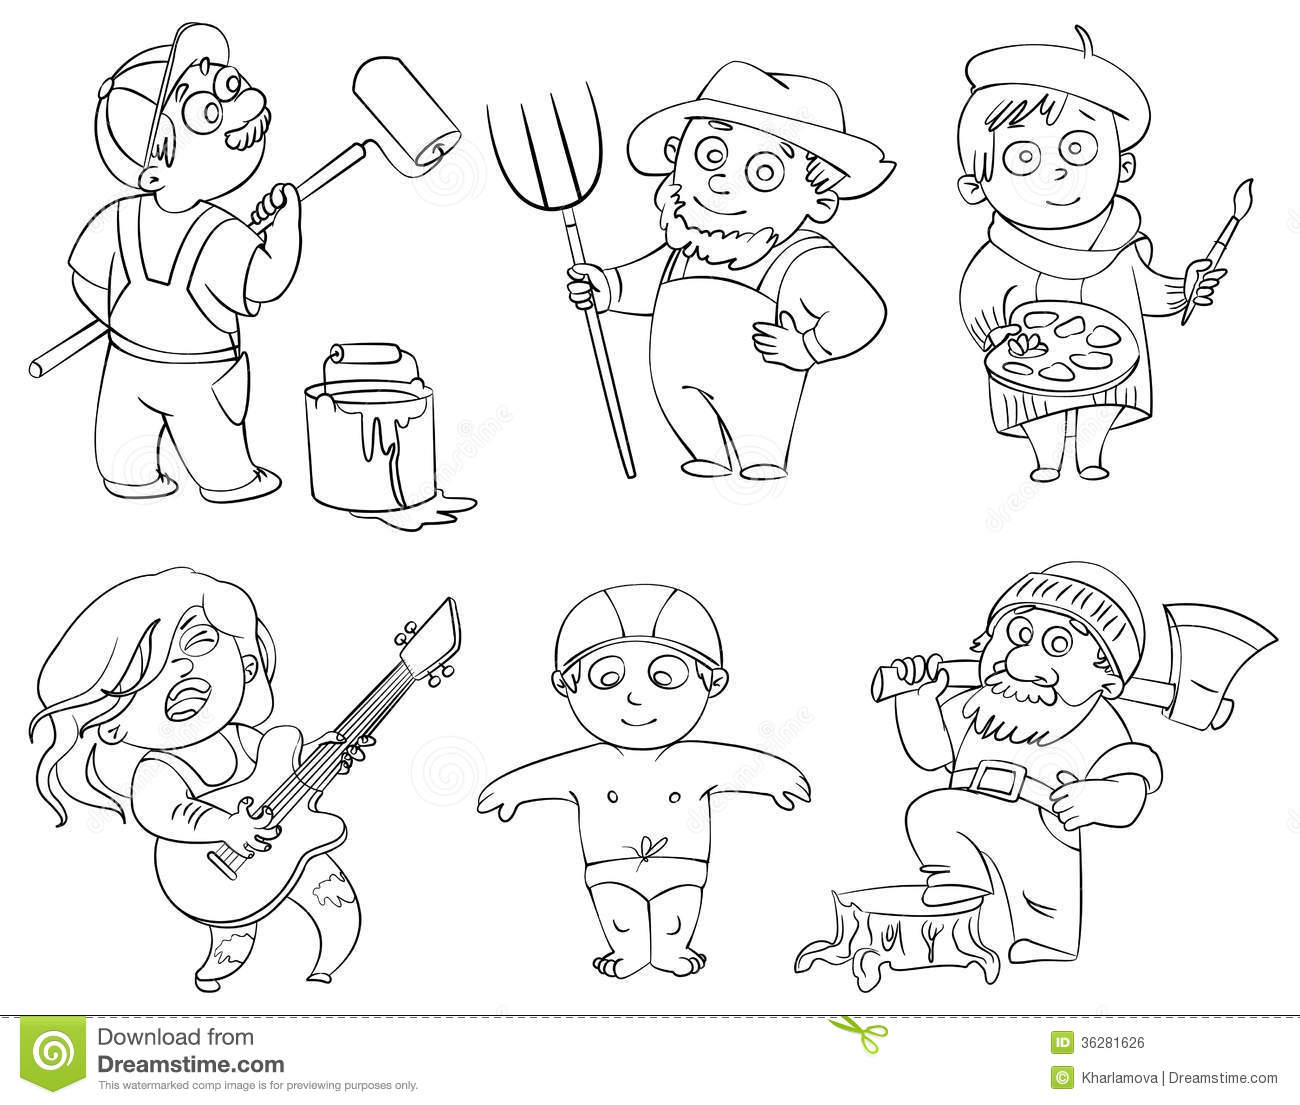 coloring pages careers - photo#43